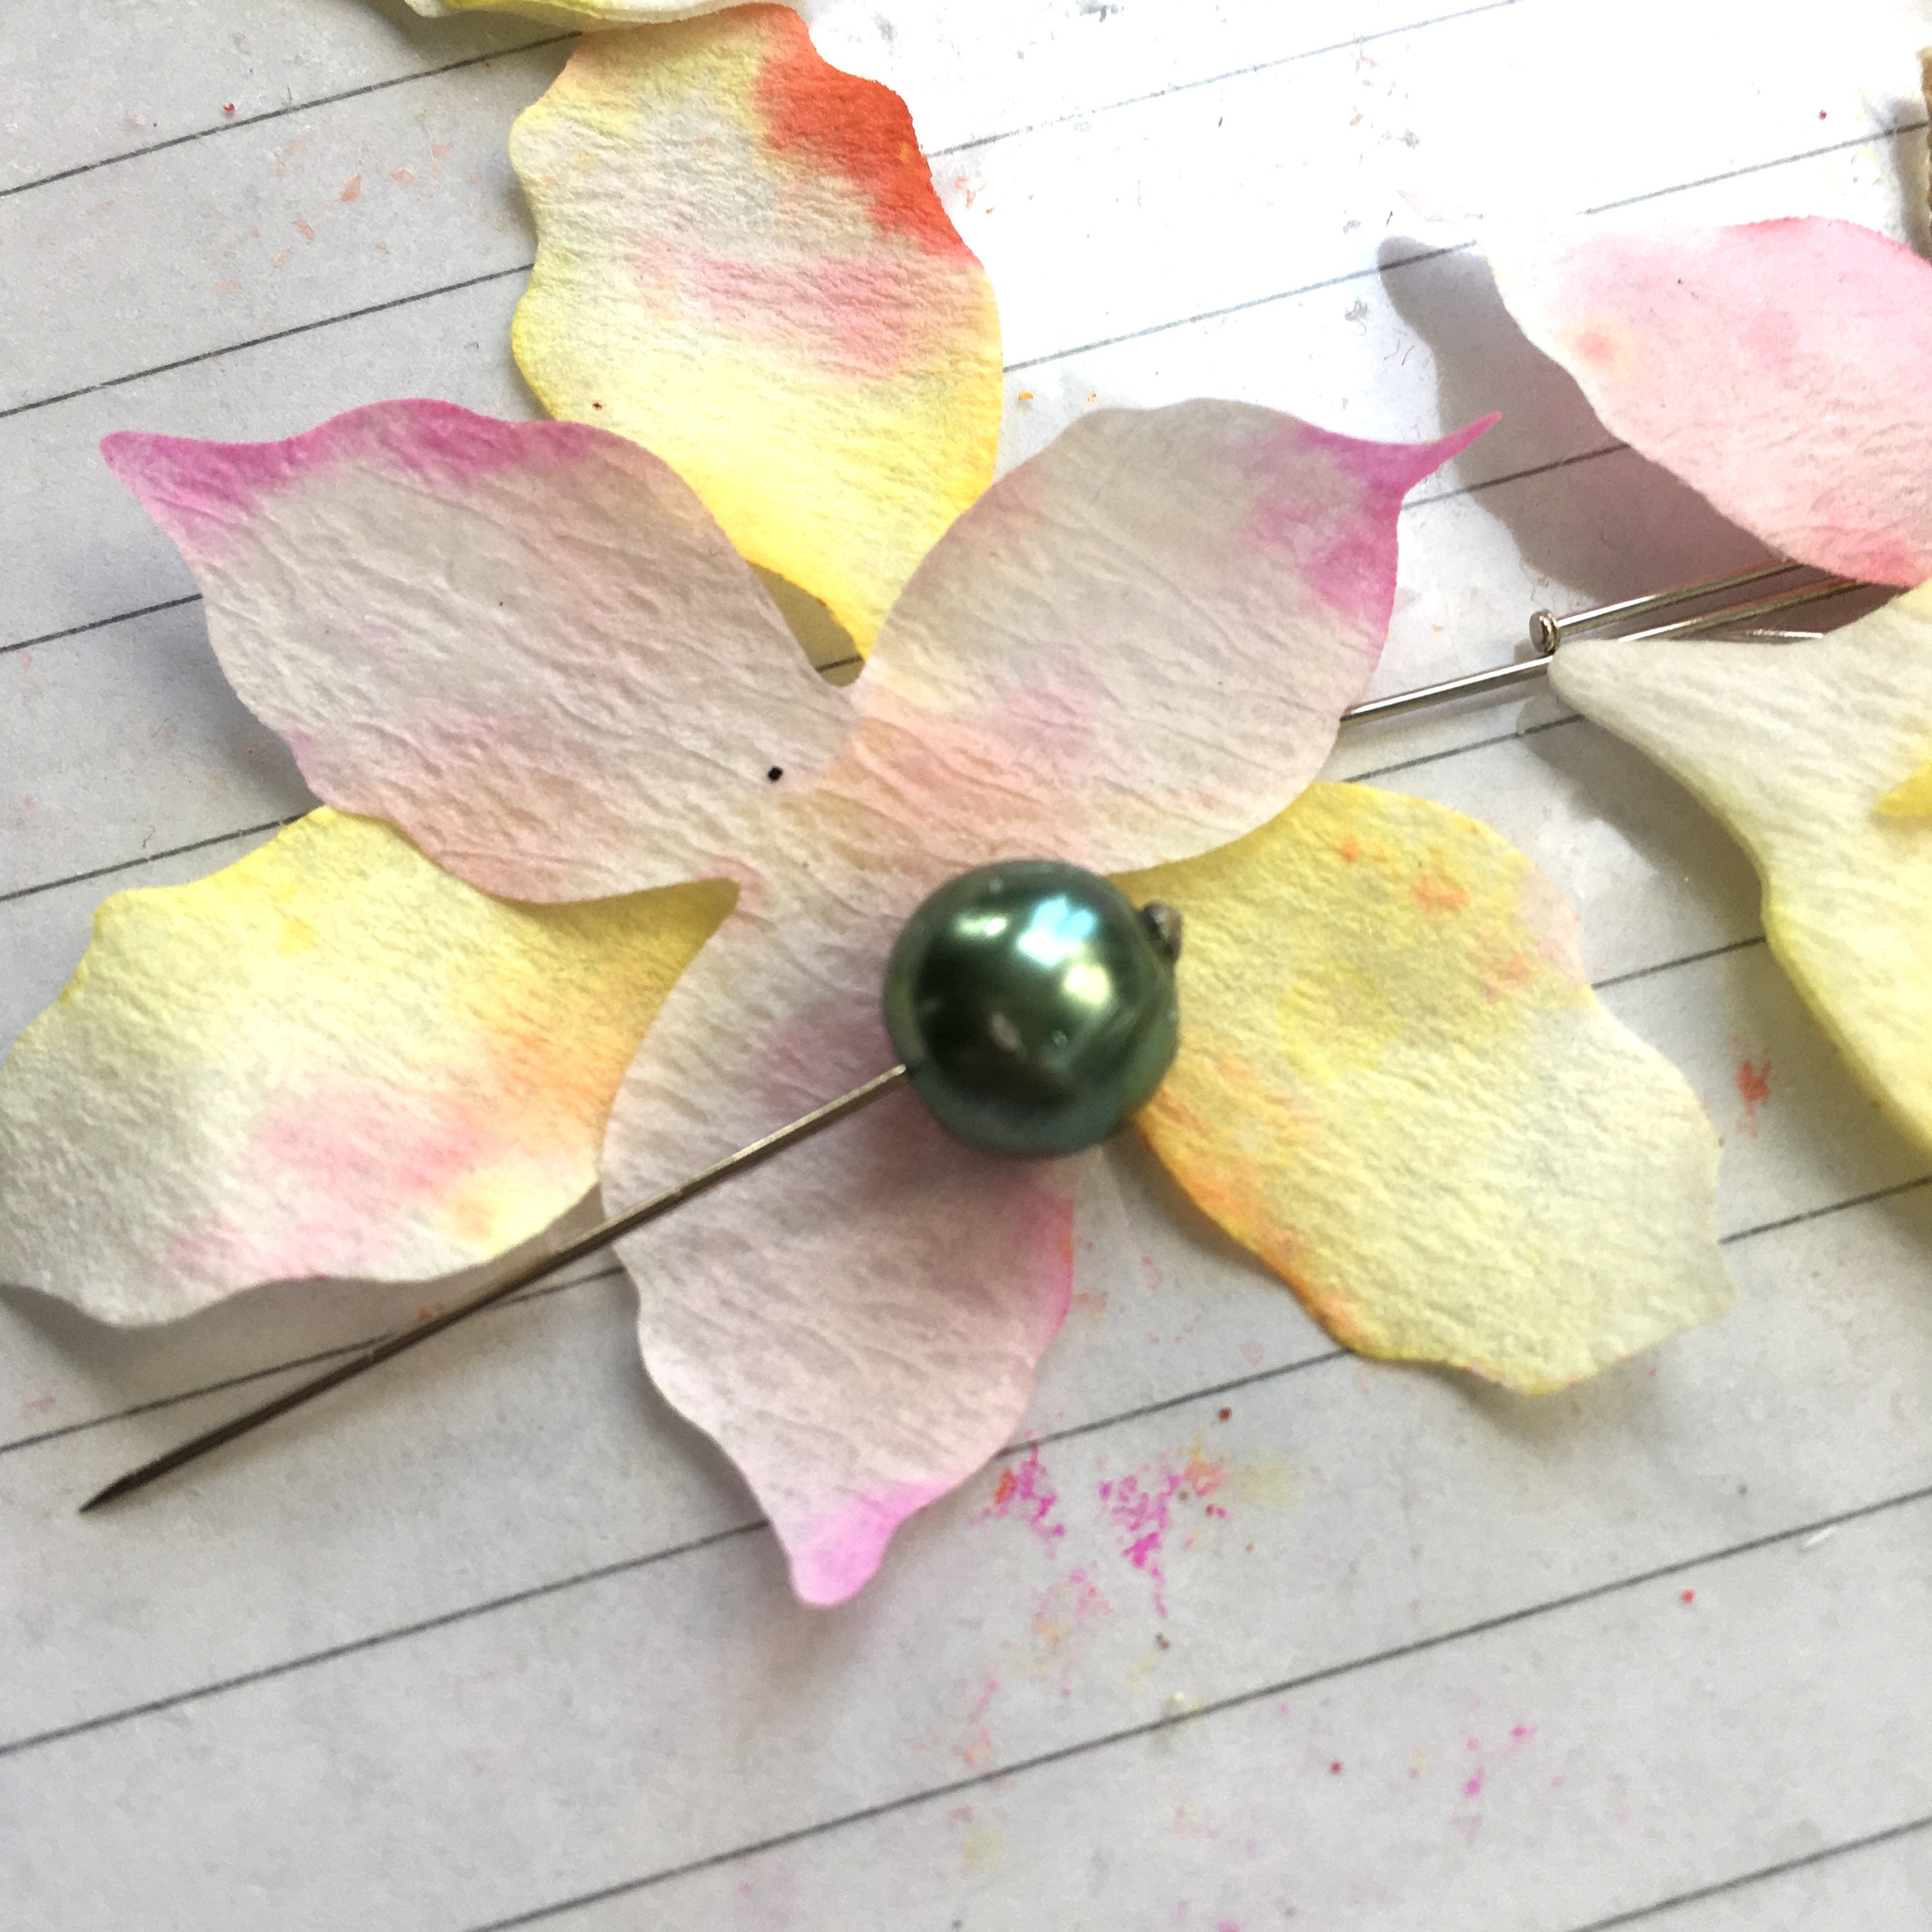 how to make cactus flowers from paper, pins and beads